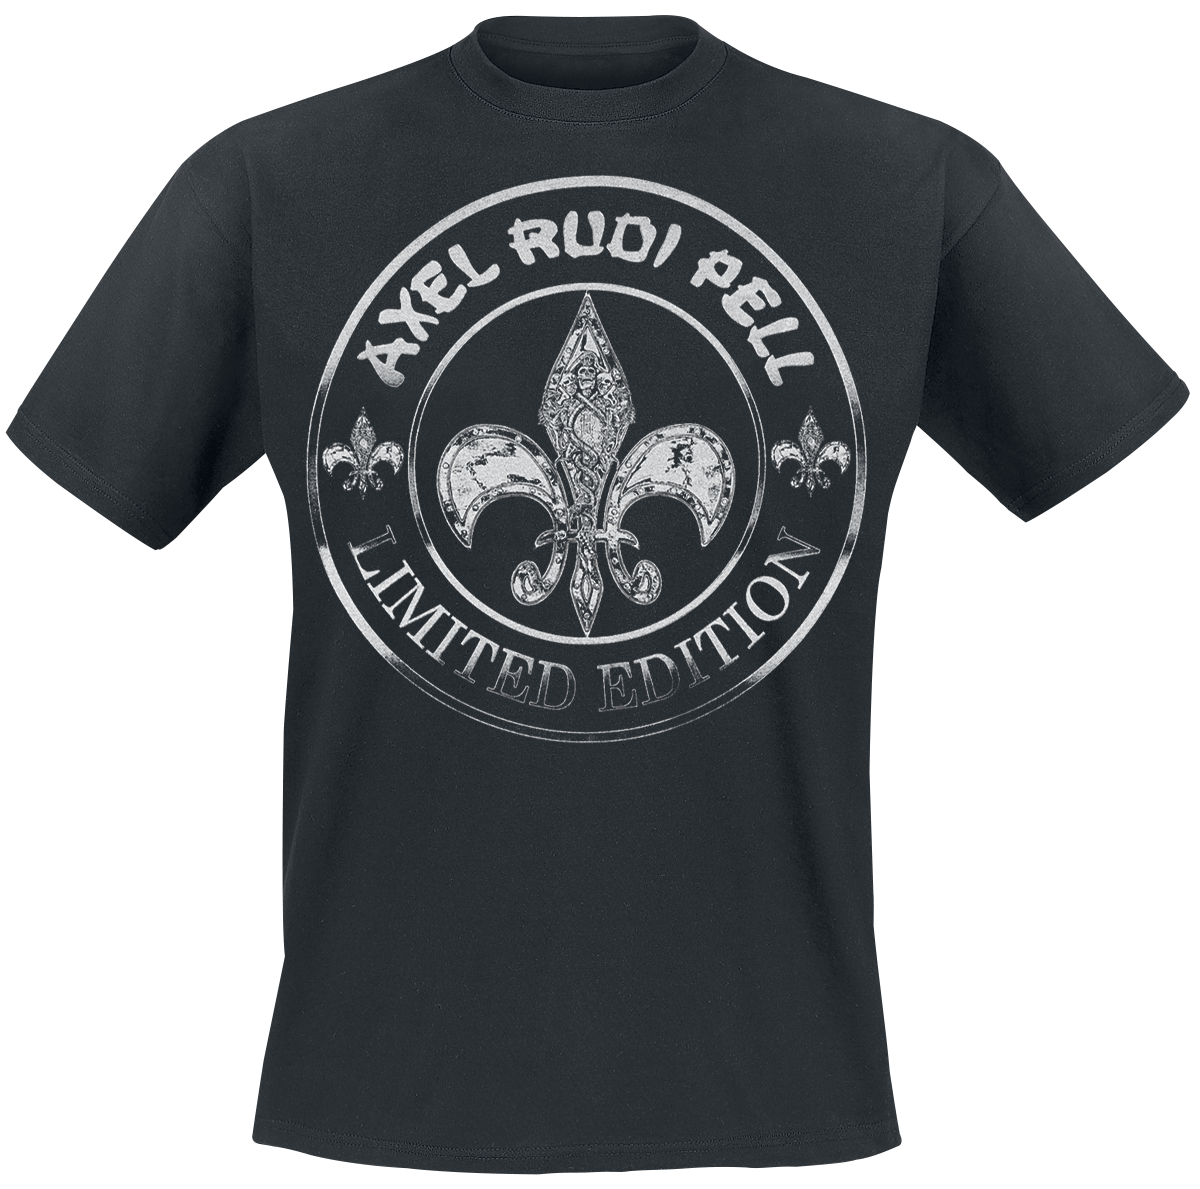 Axel Rudi Pell - Limited Edition - T-Shirt - black image